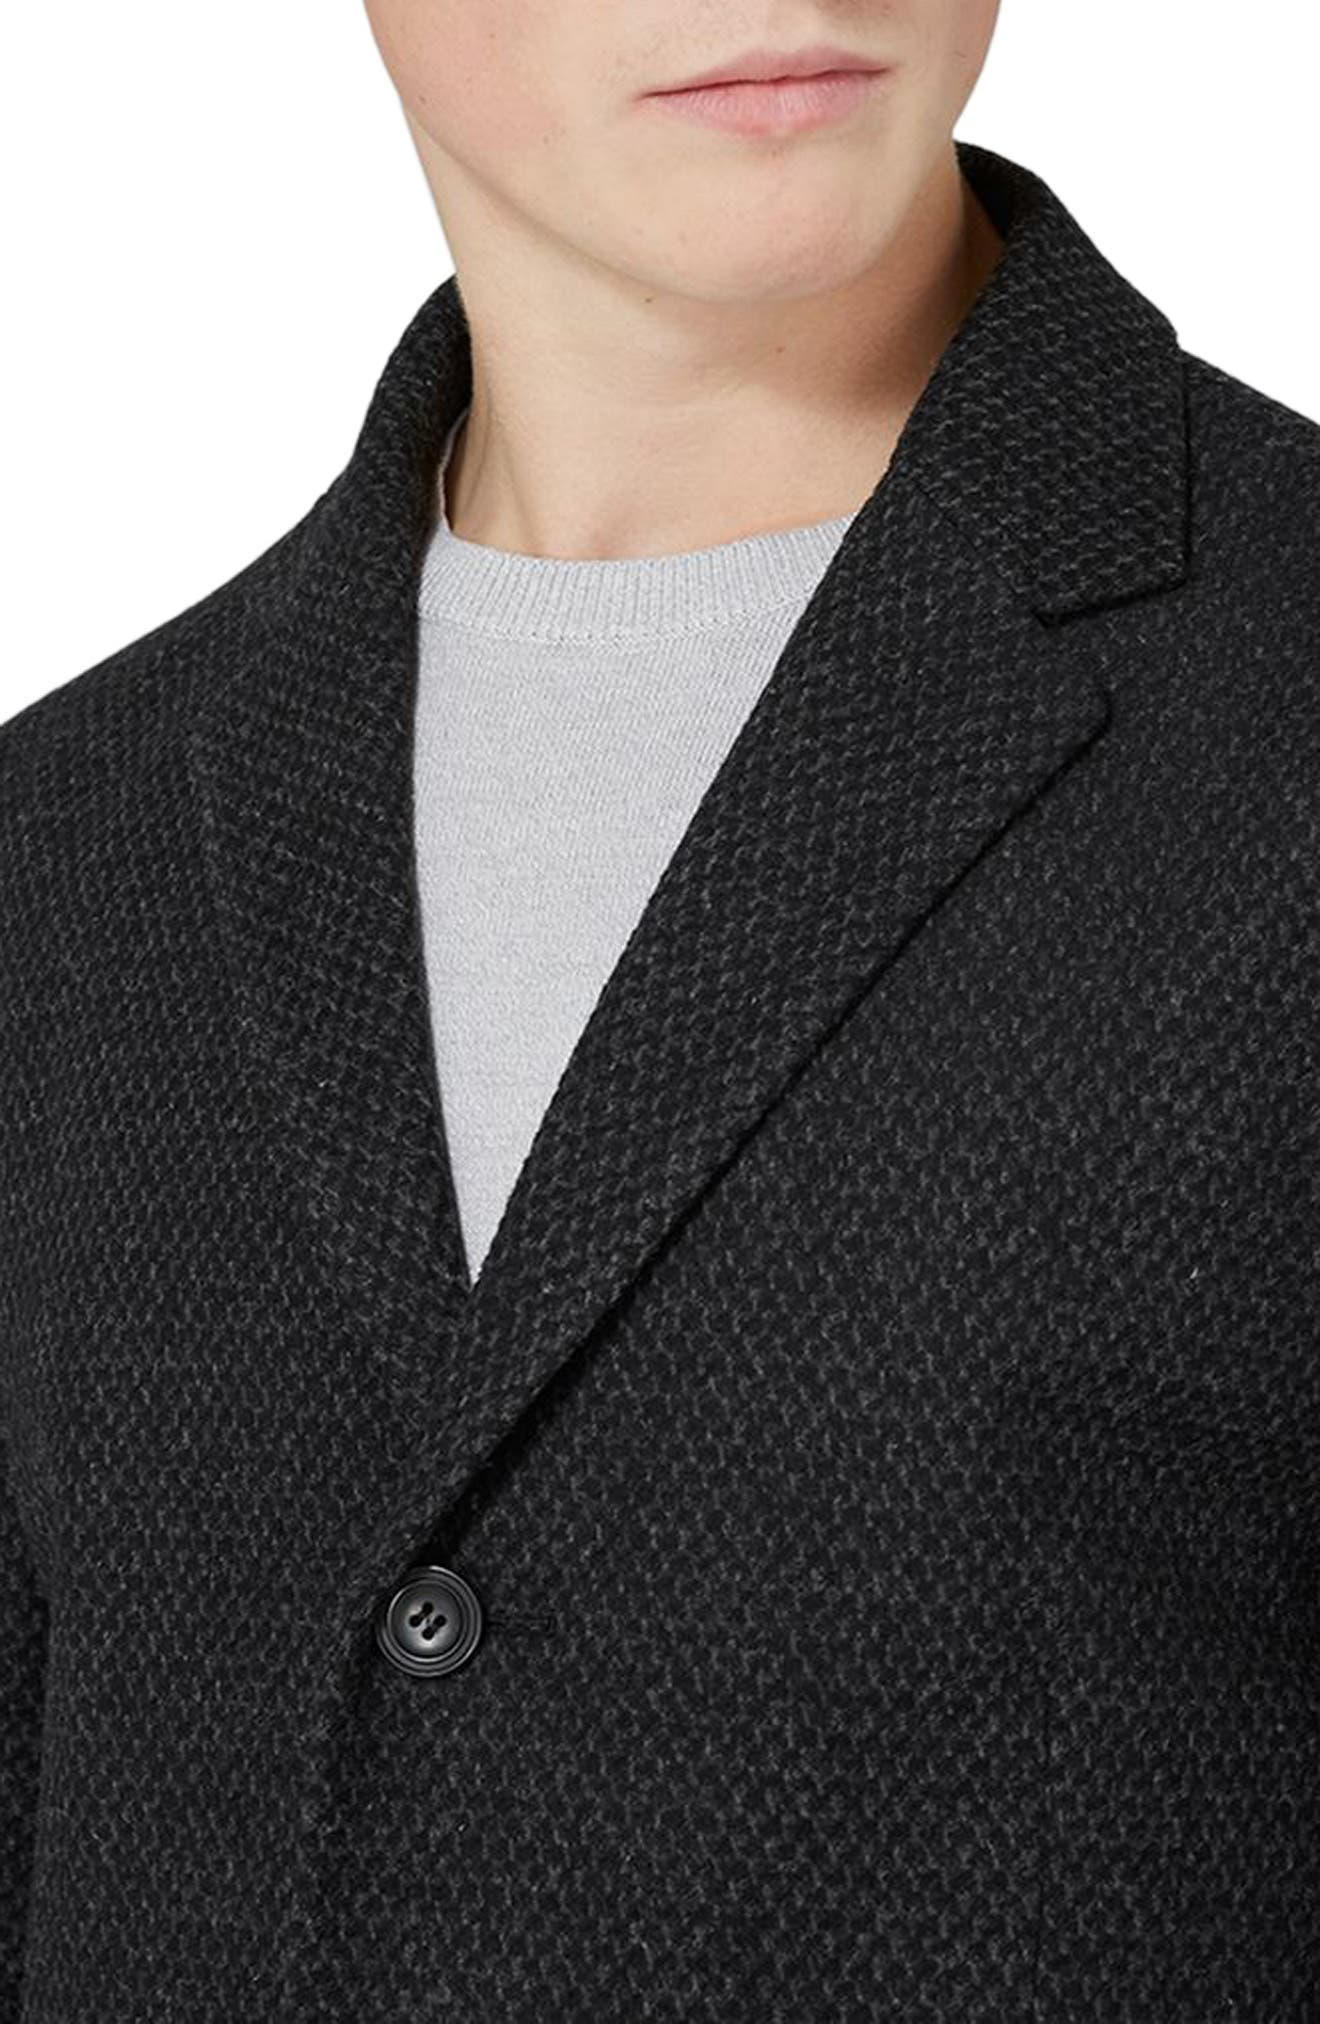 Textured Overcoat,                             Alternate thumbnail 3, color,